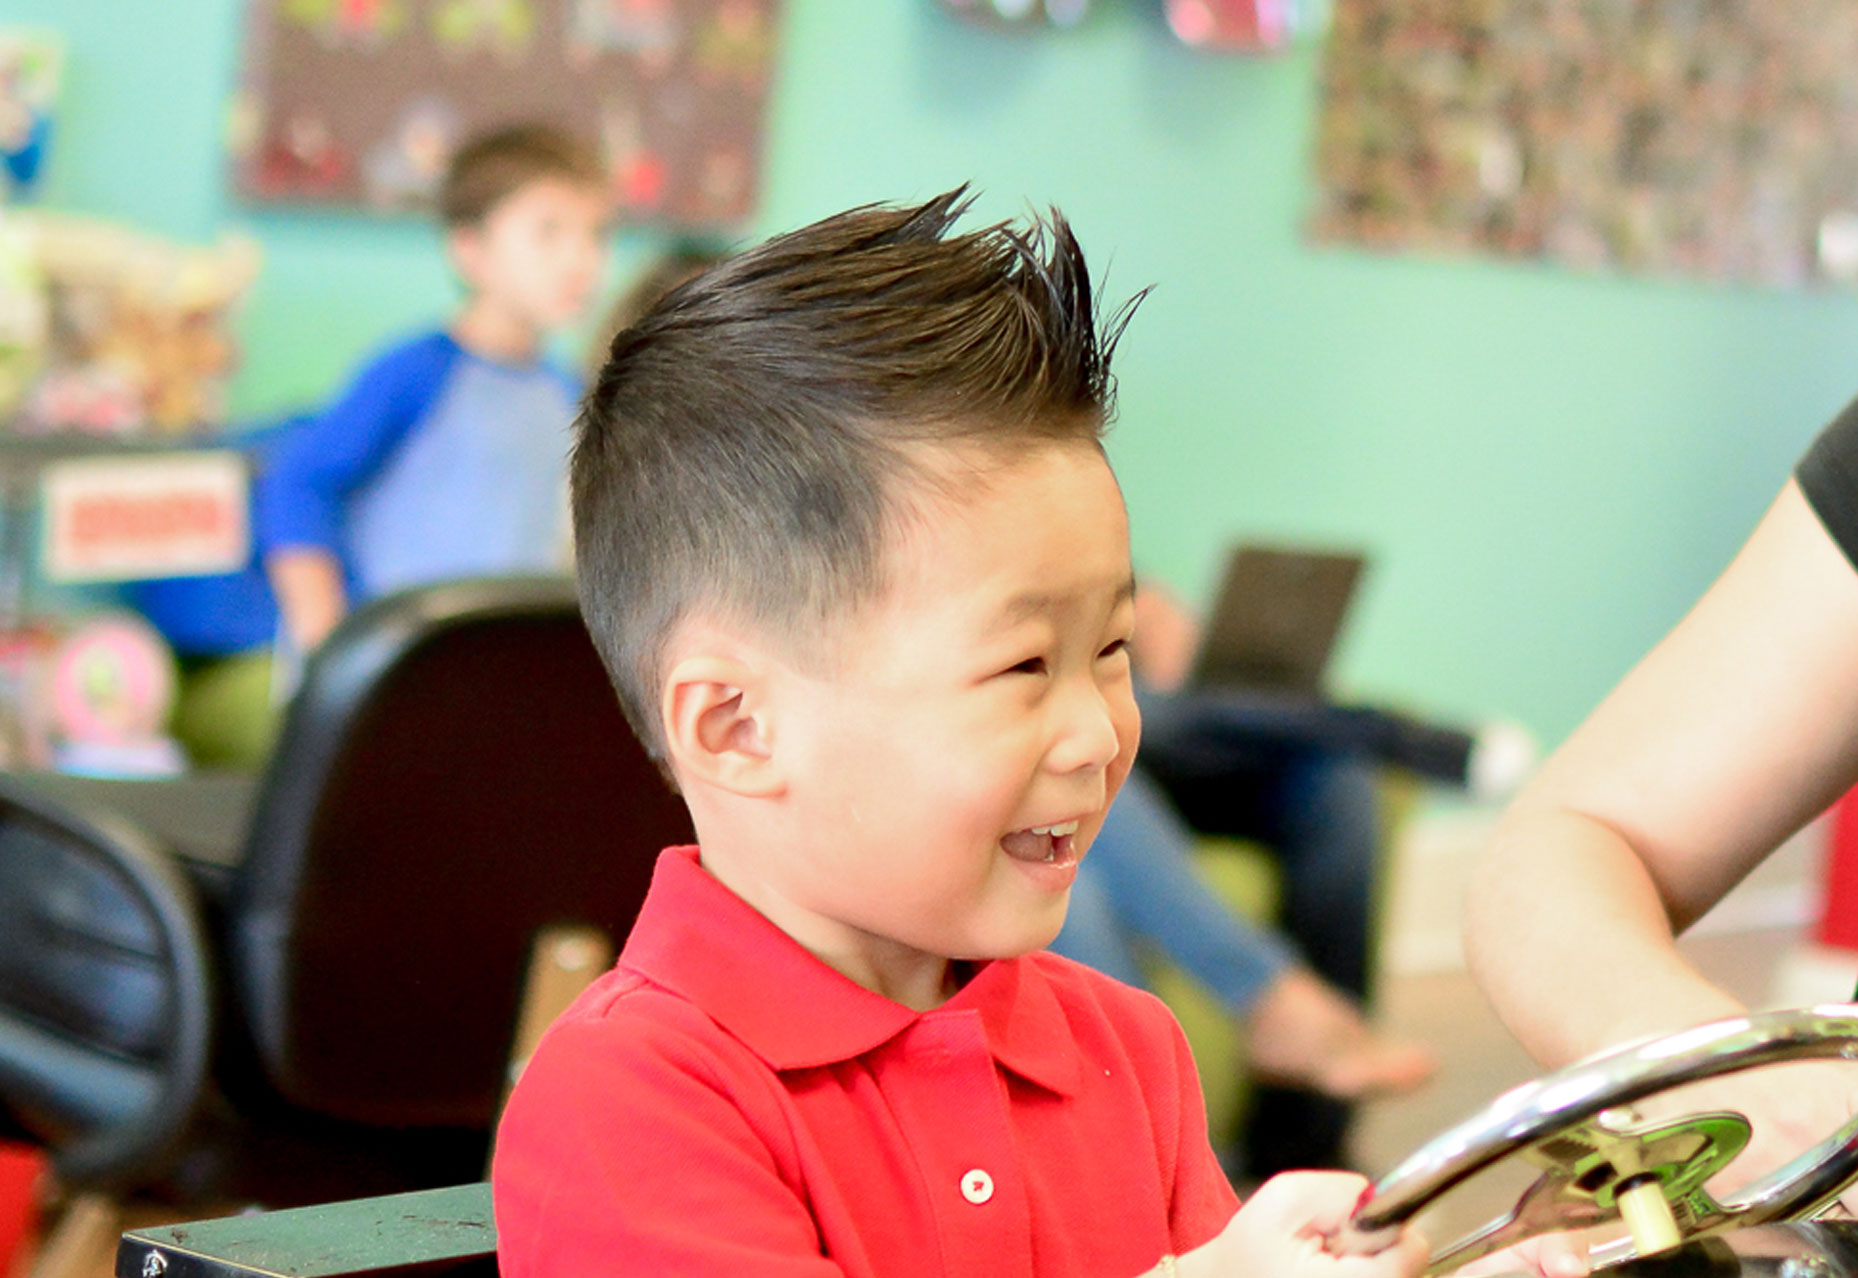 LIttle asian boy smiling after a great haircut